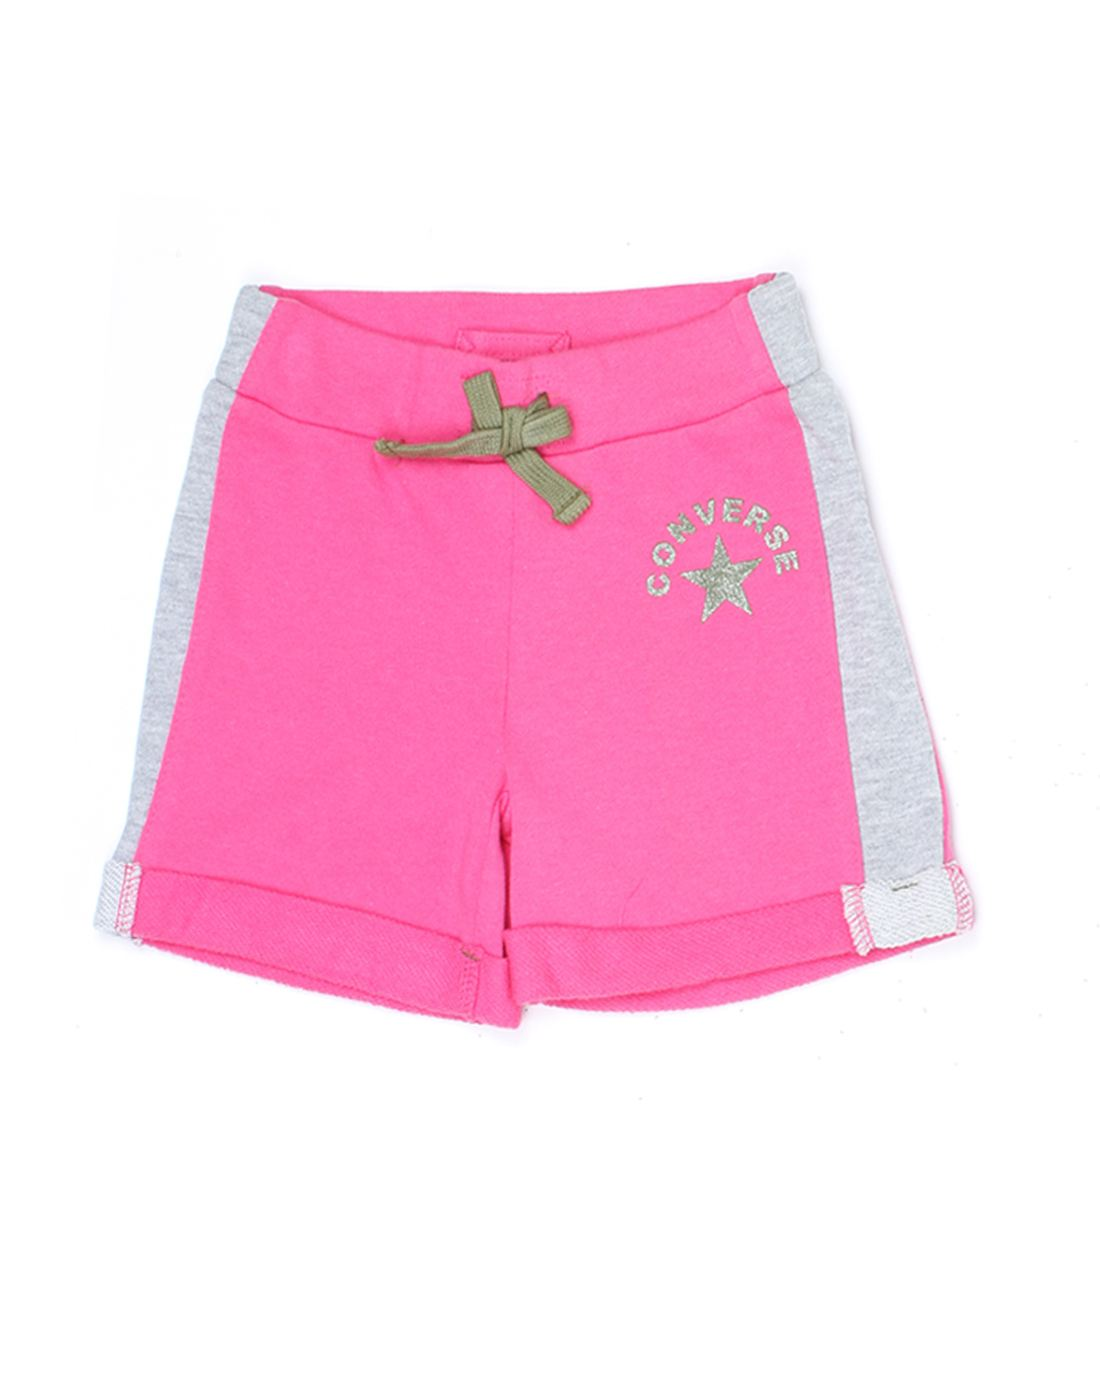 Converse Girls Pink Shorts